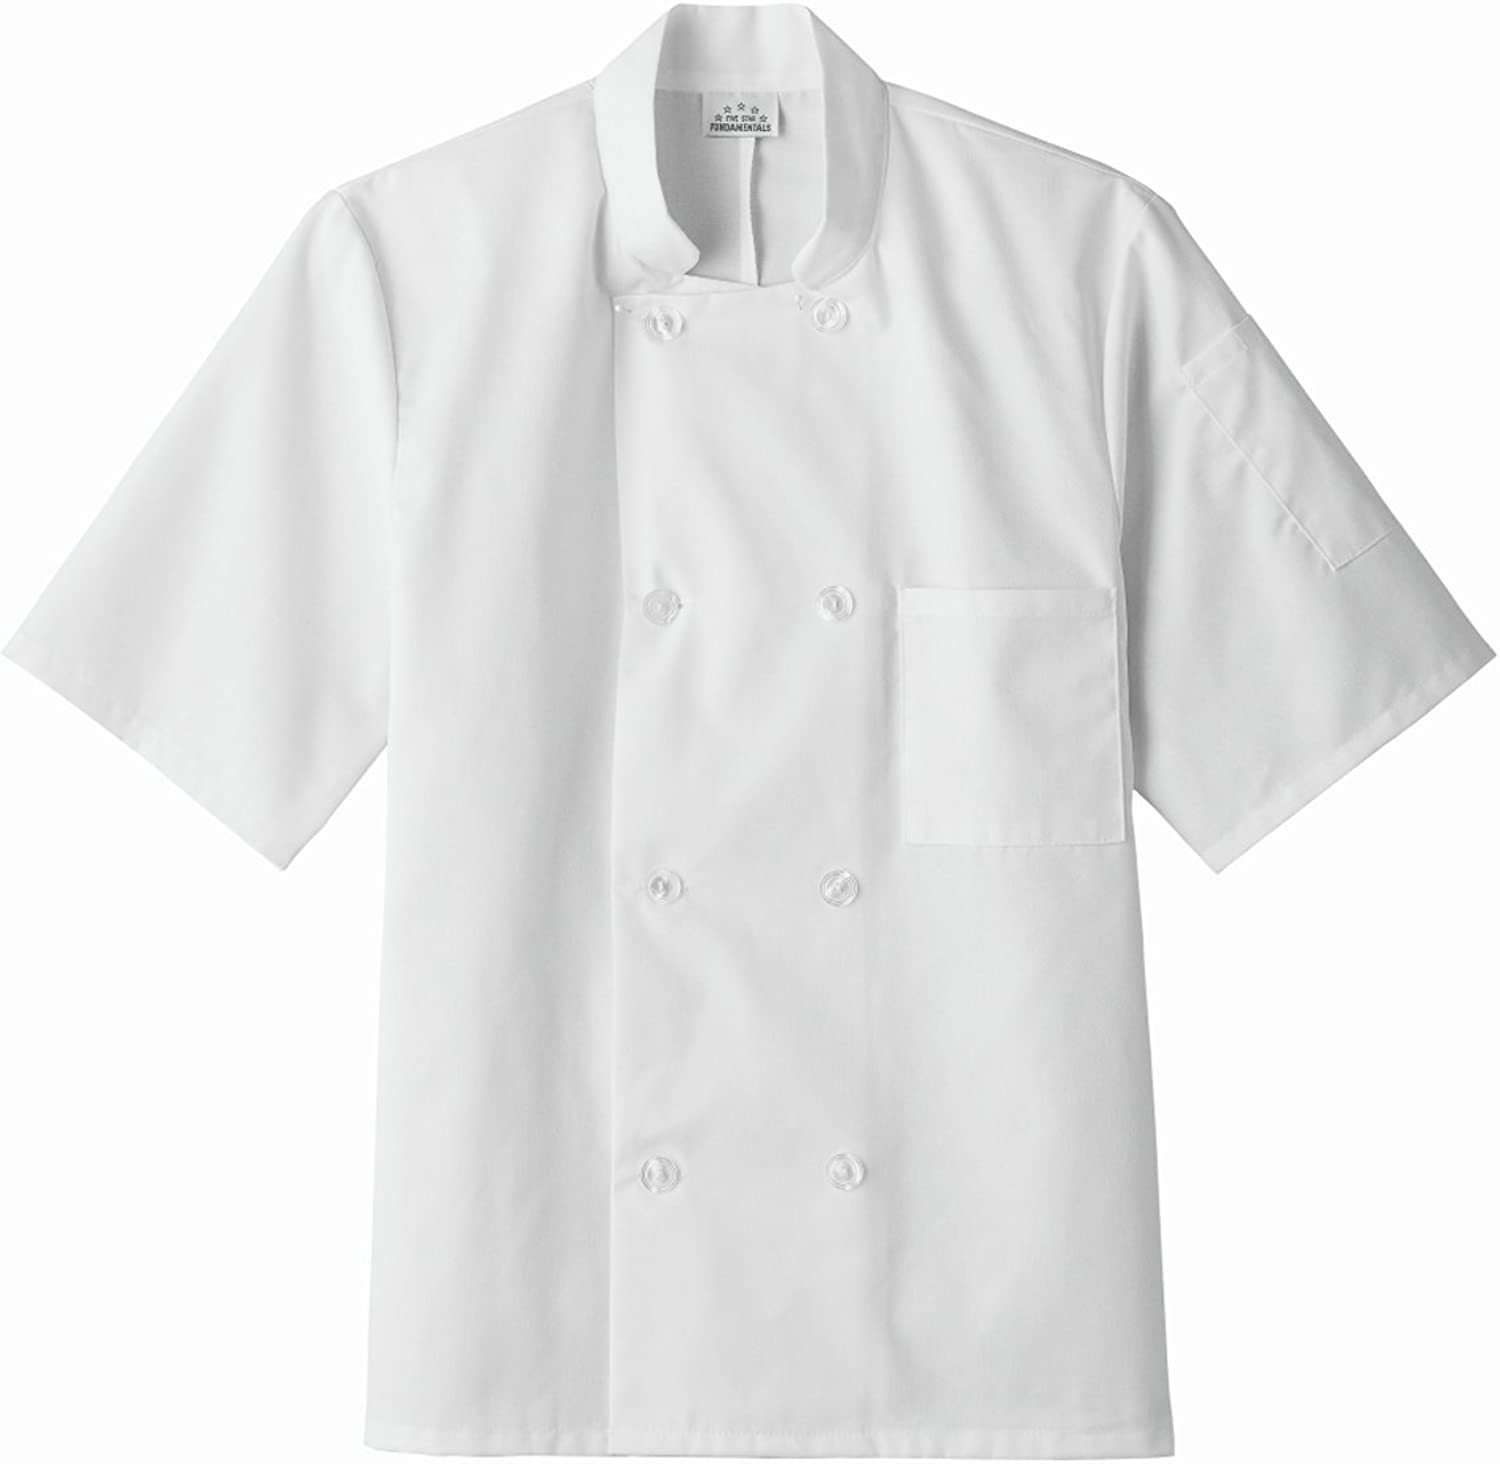 Five Star Chef Apparel 18001 Unisex Short Sleeve Chef Coat